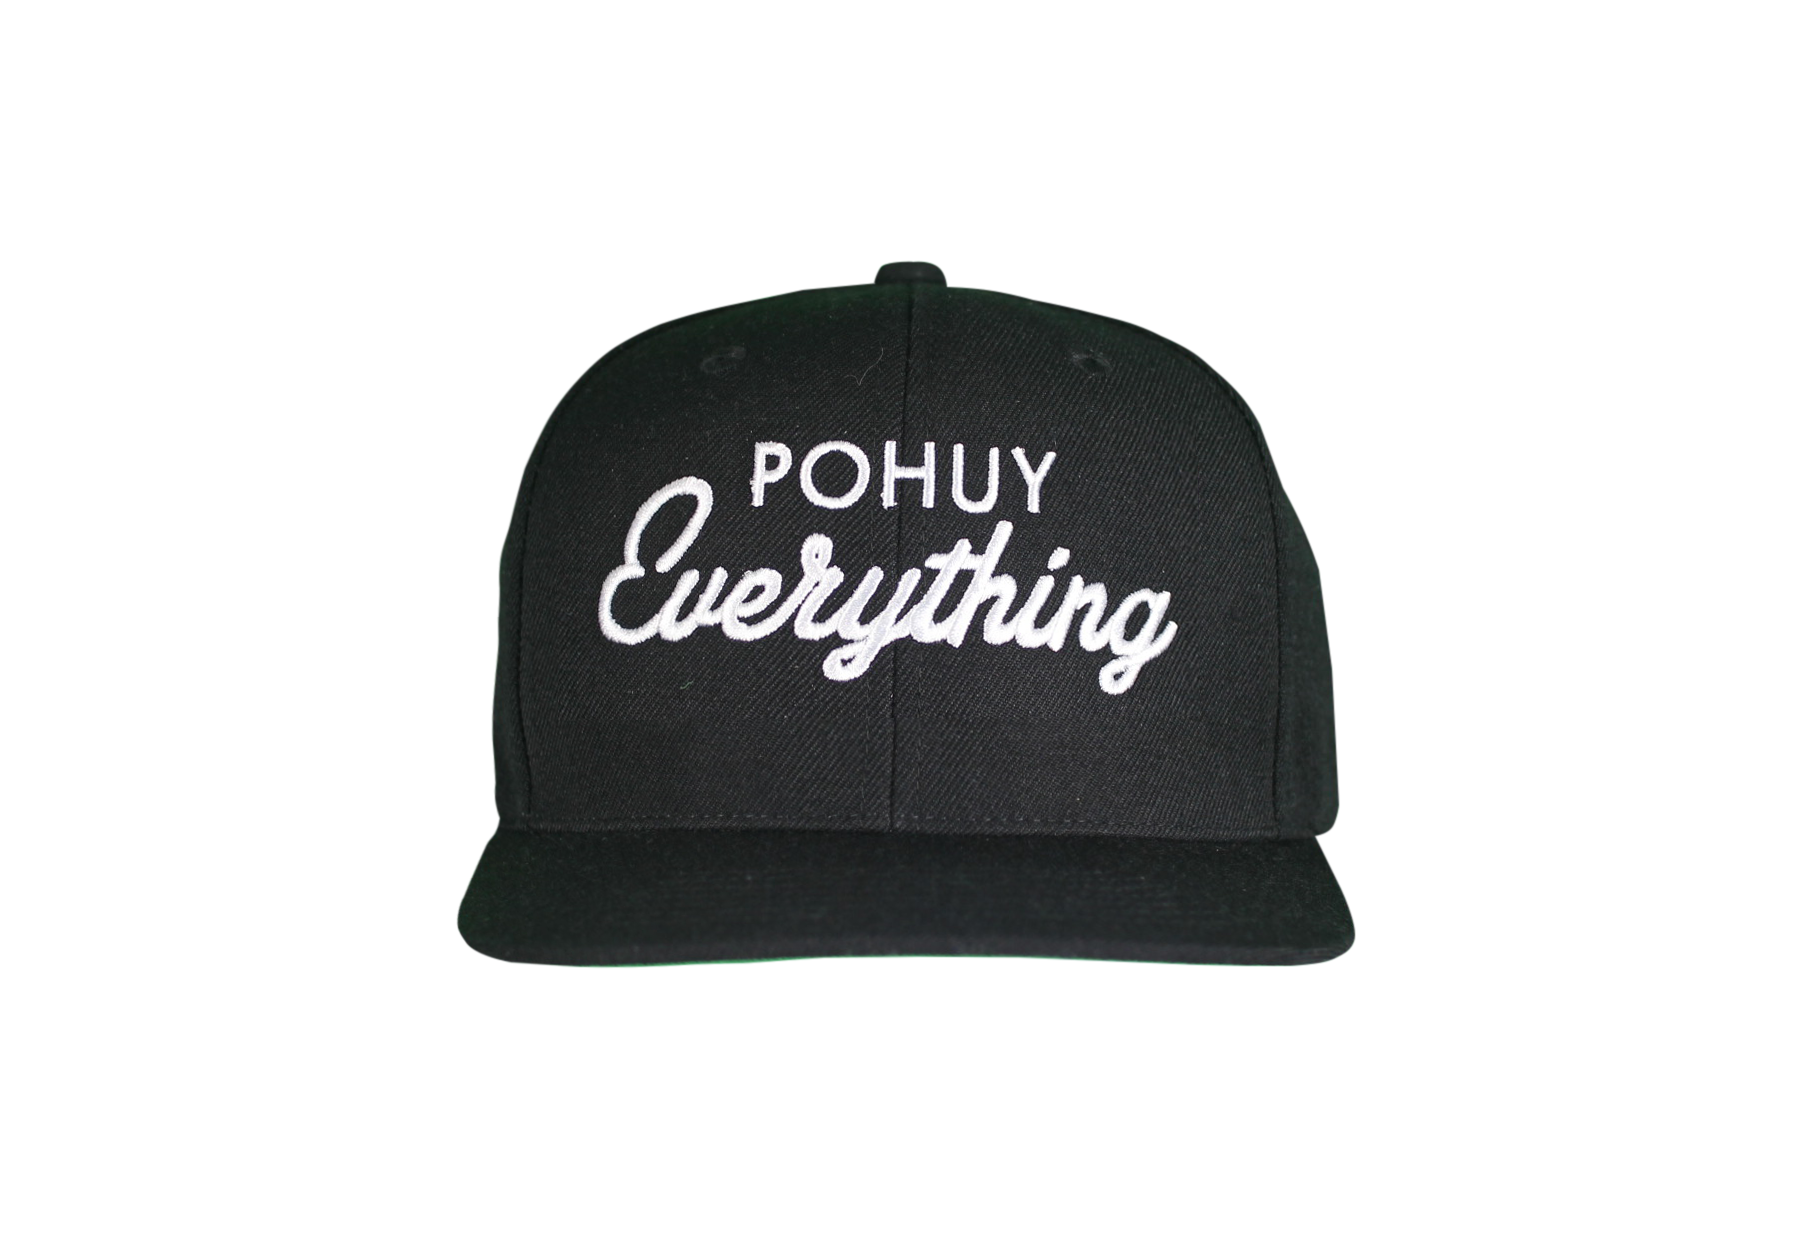 25a1a9c05272 Pohuy Everything Snapback – pohuynyc